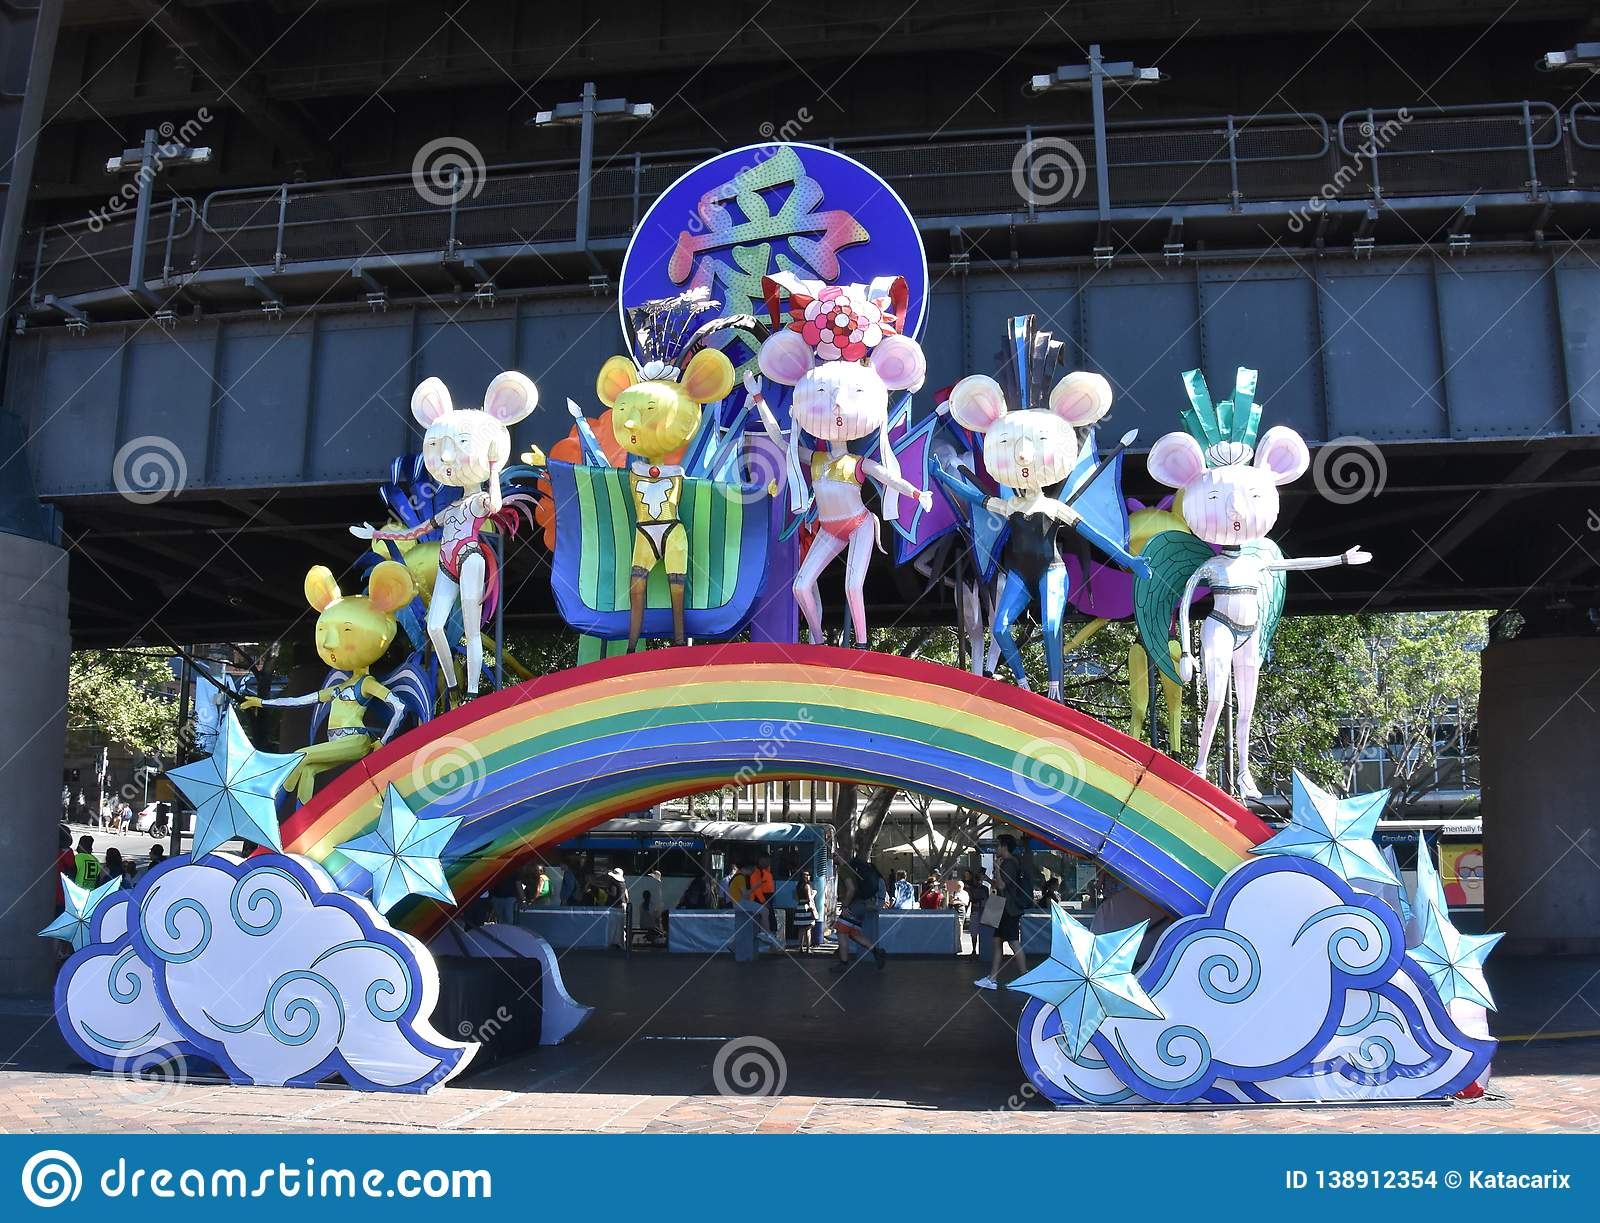 Larger than life lanterns in the shape of Chinese zodiac animals at Circular Quay